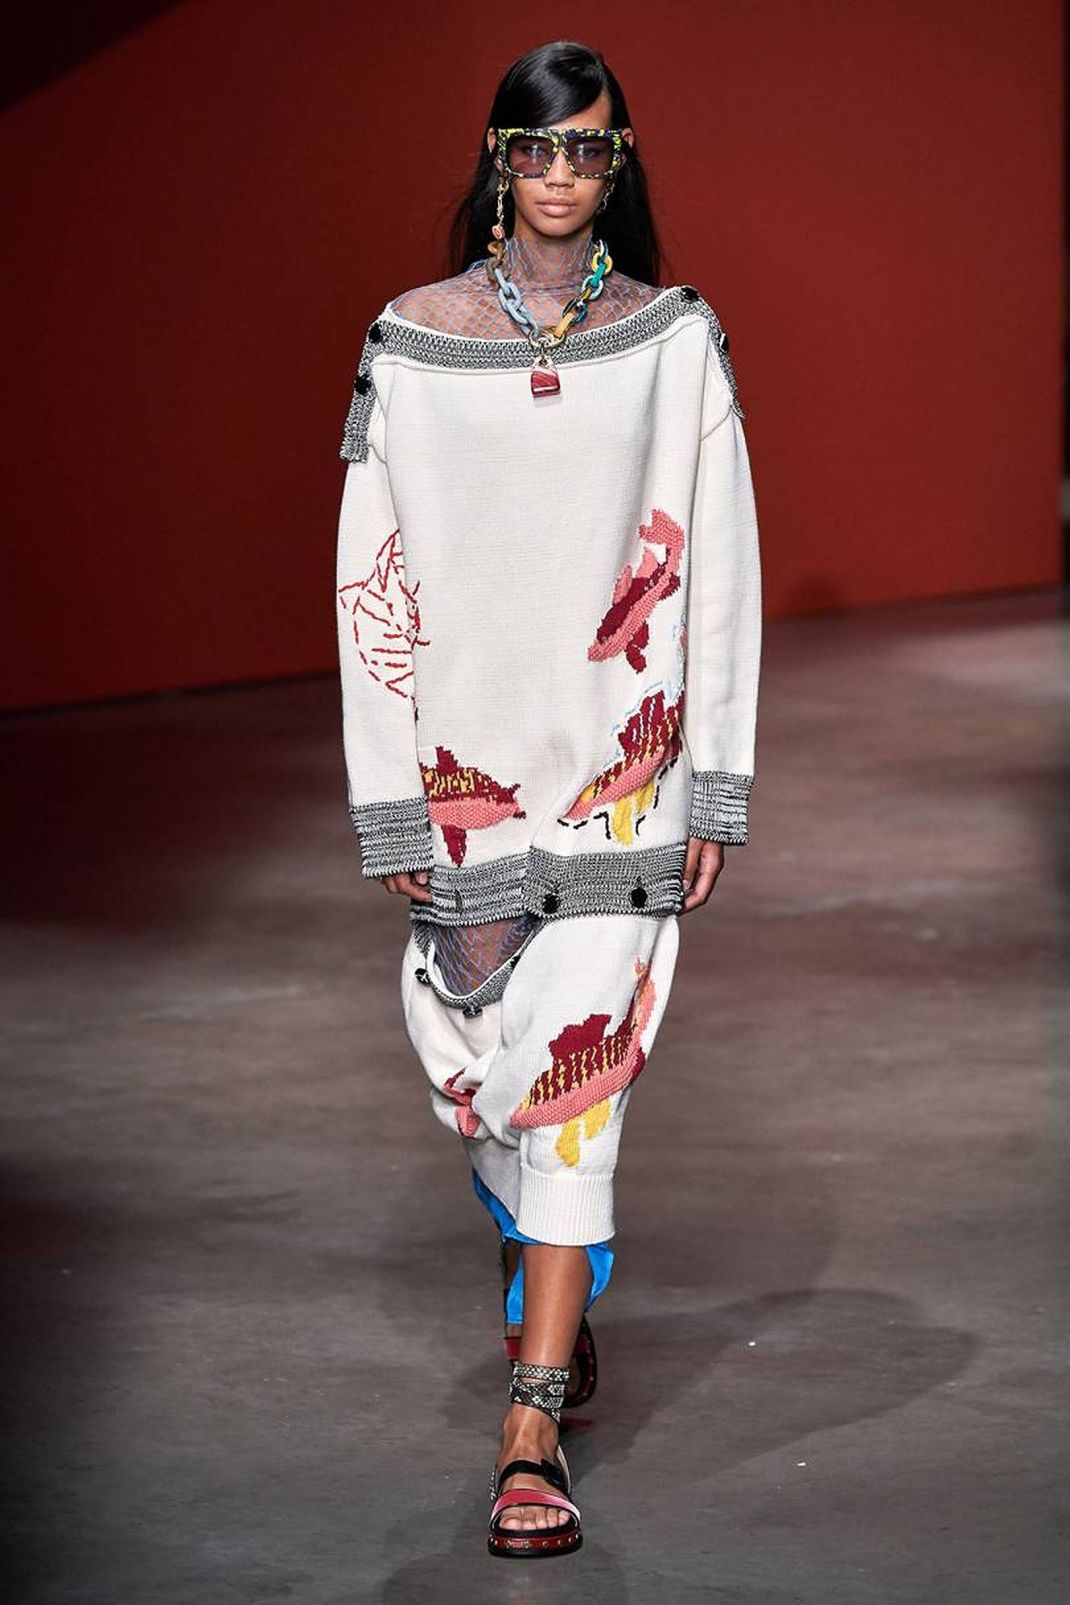 Fashion Report @LFW – SPRING/SUMMER 2020 READY-TO-WEAR